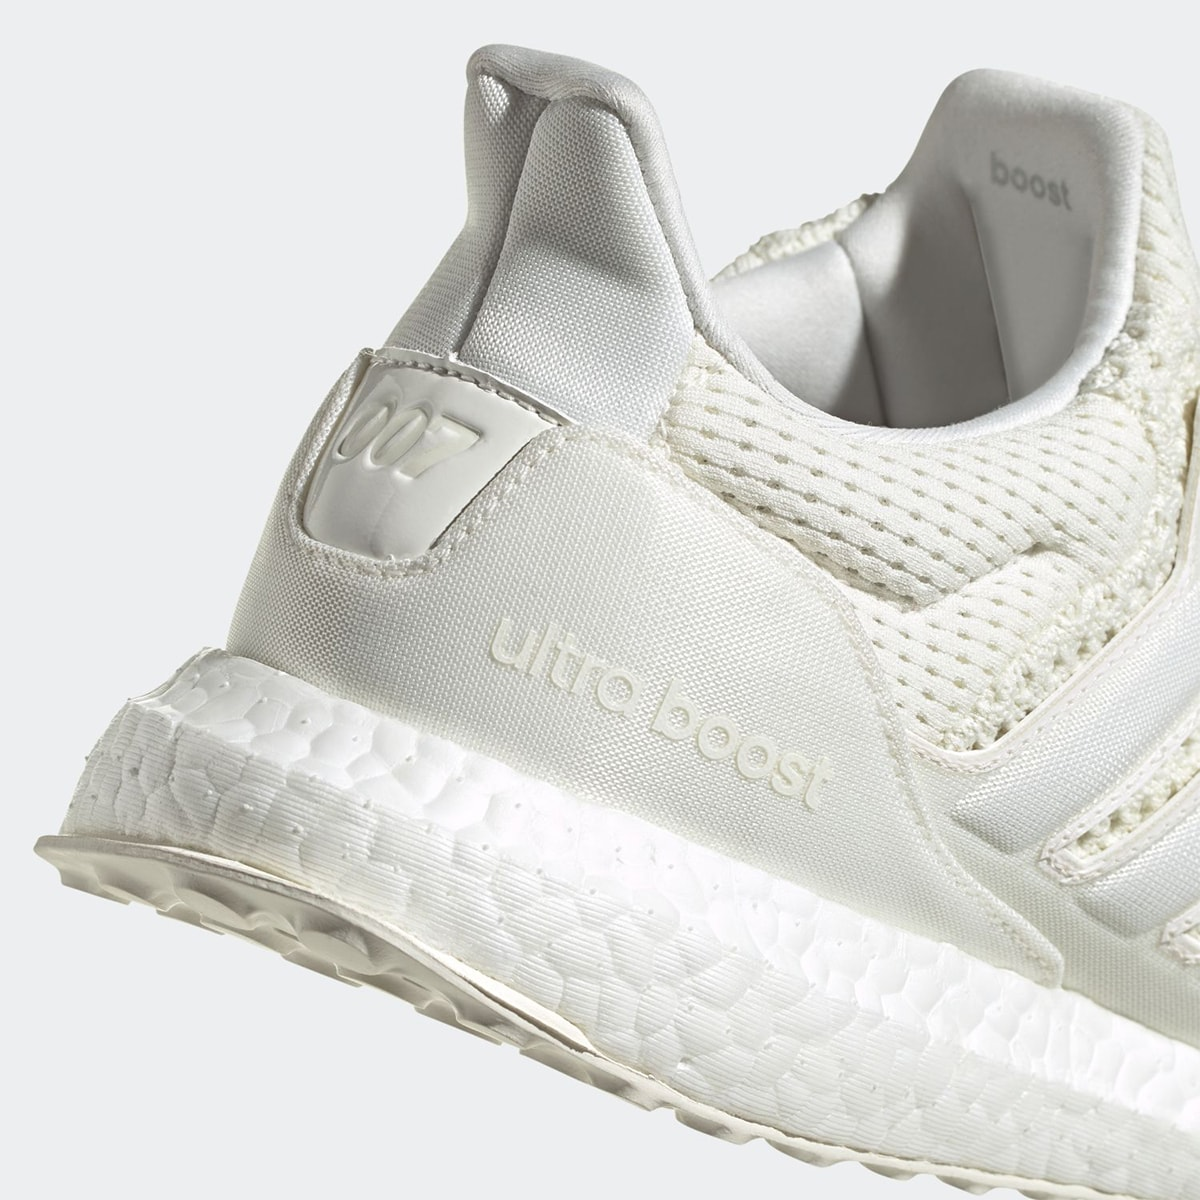 astronomía Adelaida Mucama  The James Bond x adidas Ultra BOOST Collection Has Been Postponed - HOUSE  OF HEAT | Sneaker News, Release Dates and Features